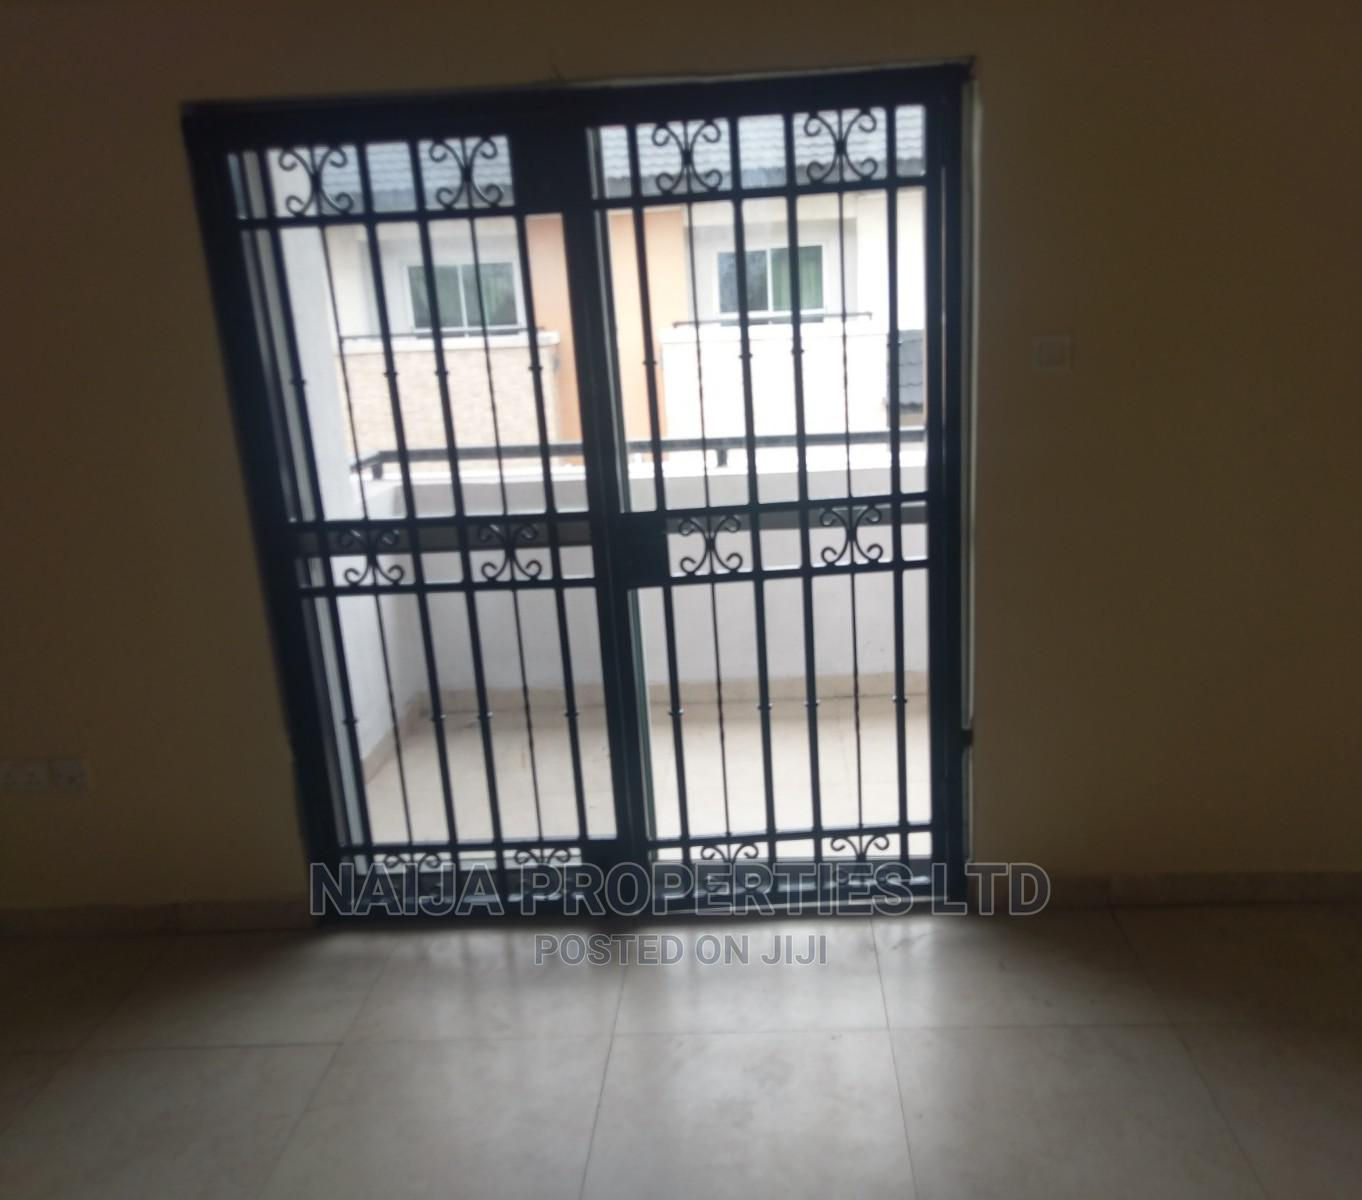 4 Bedrooms Duplex for Rent in New Road, Lekki   Houses & Apartments For Rent for sale in Lekki, Lagos State, Nigeria